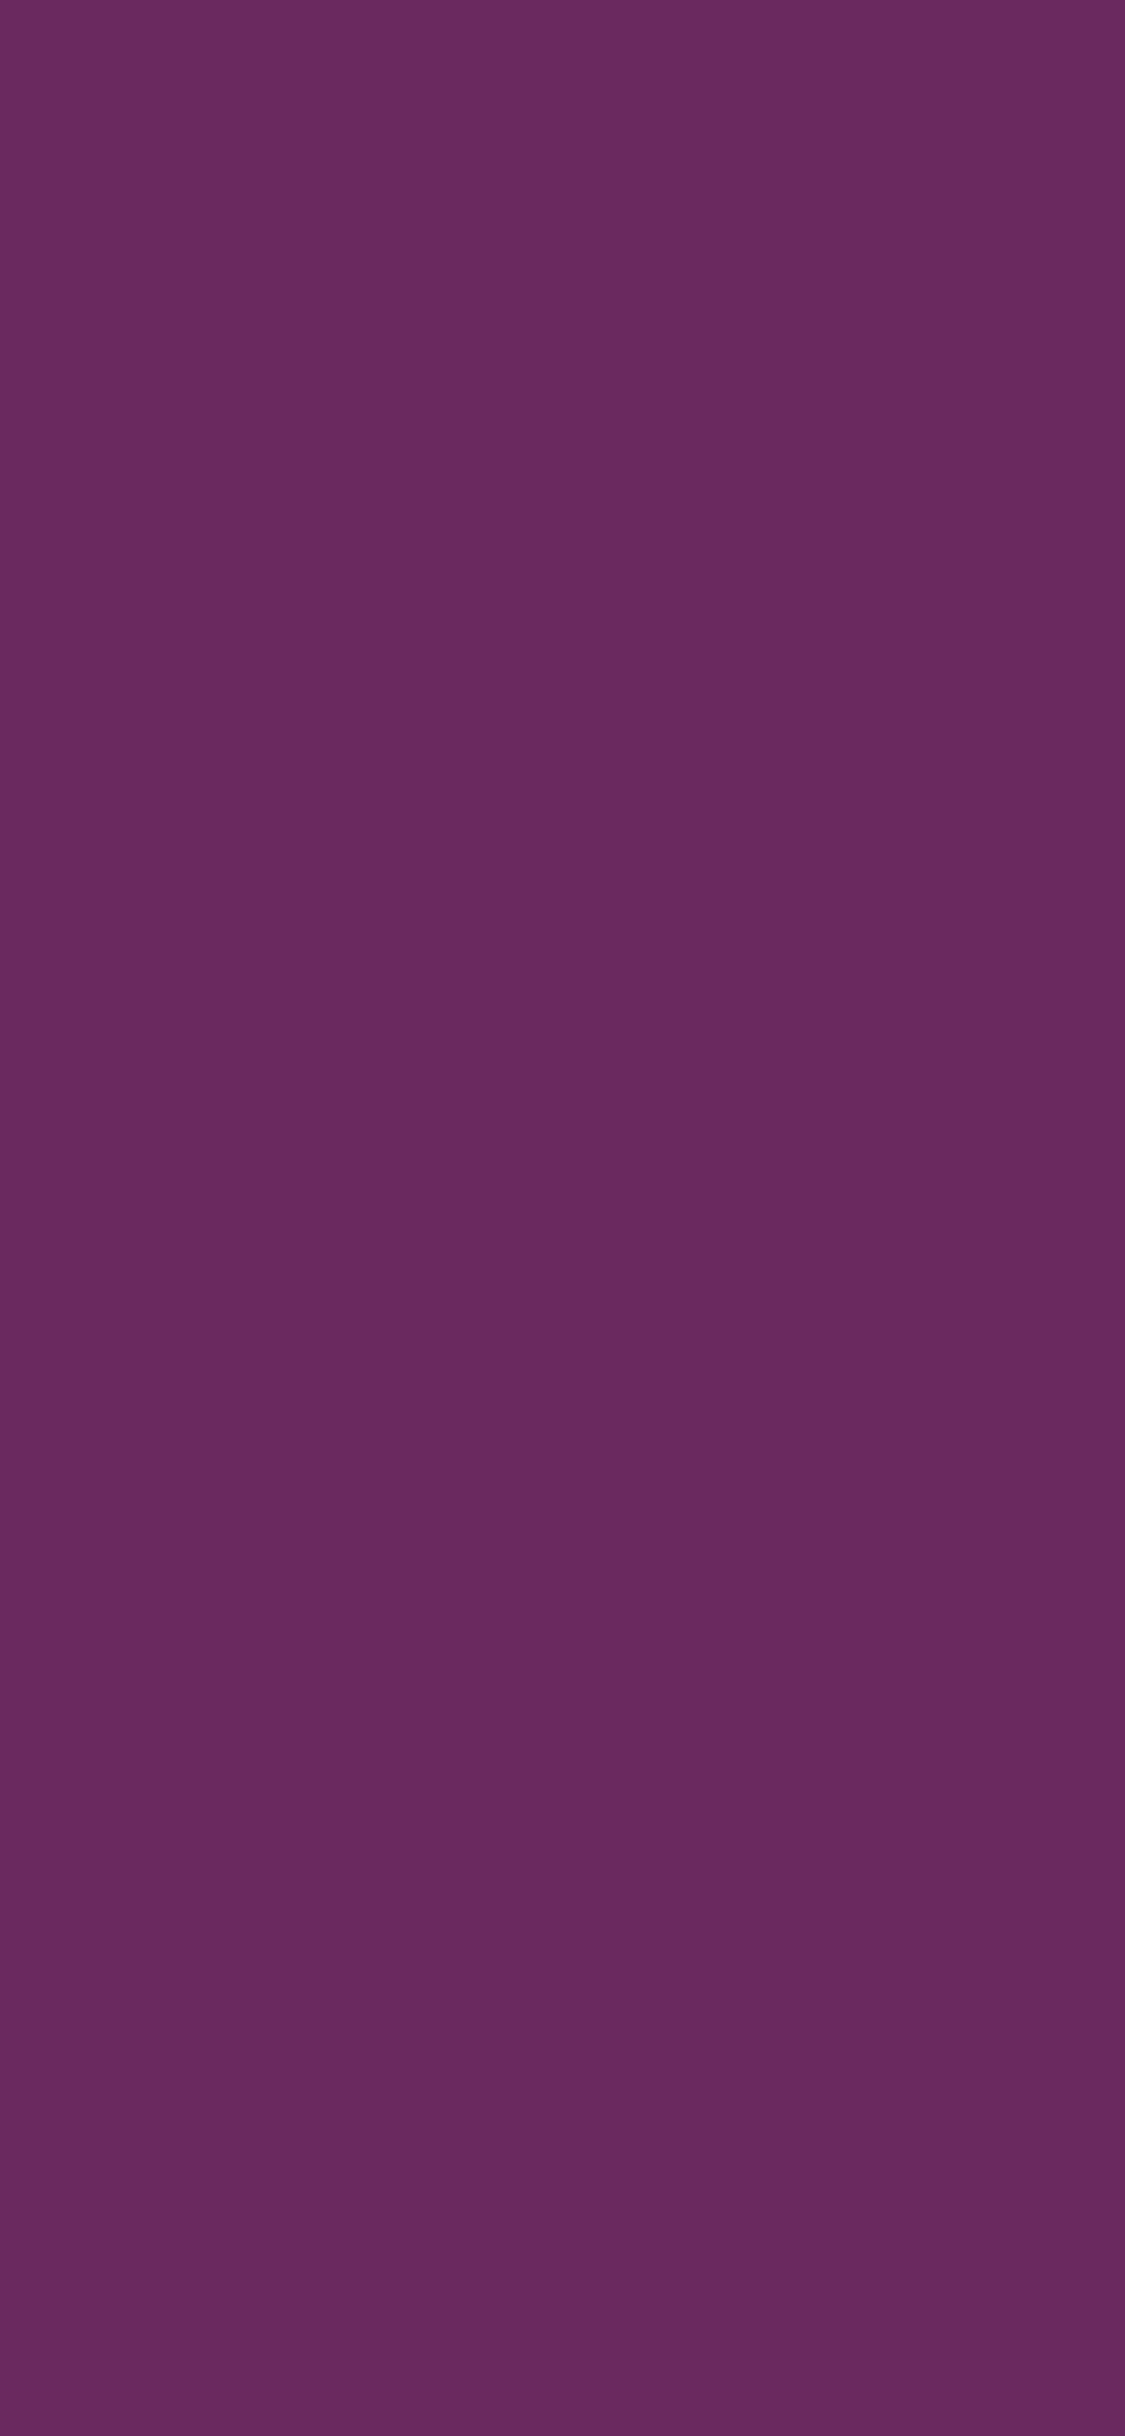 1125x2436 Palatinate Purple Solid Color Background